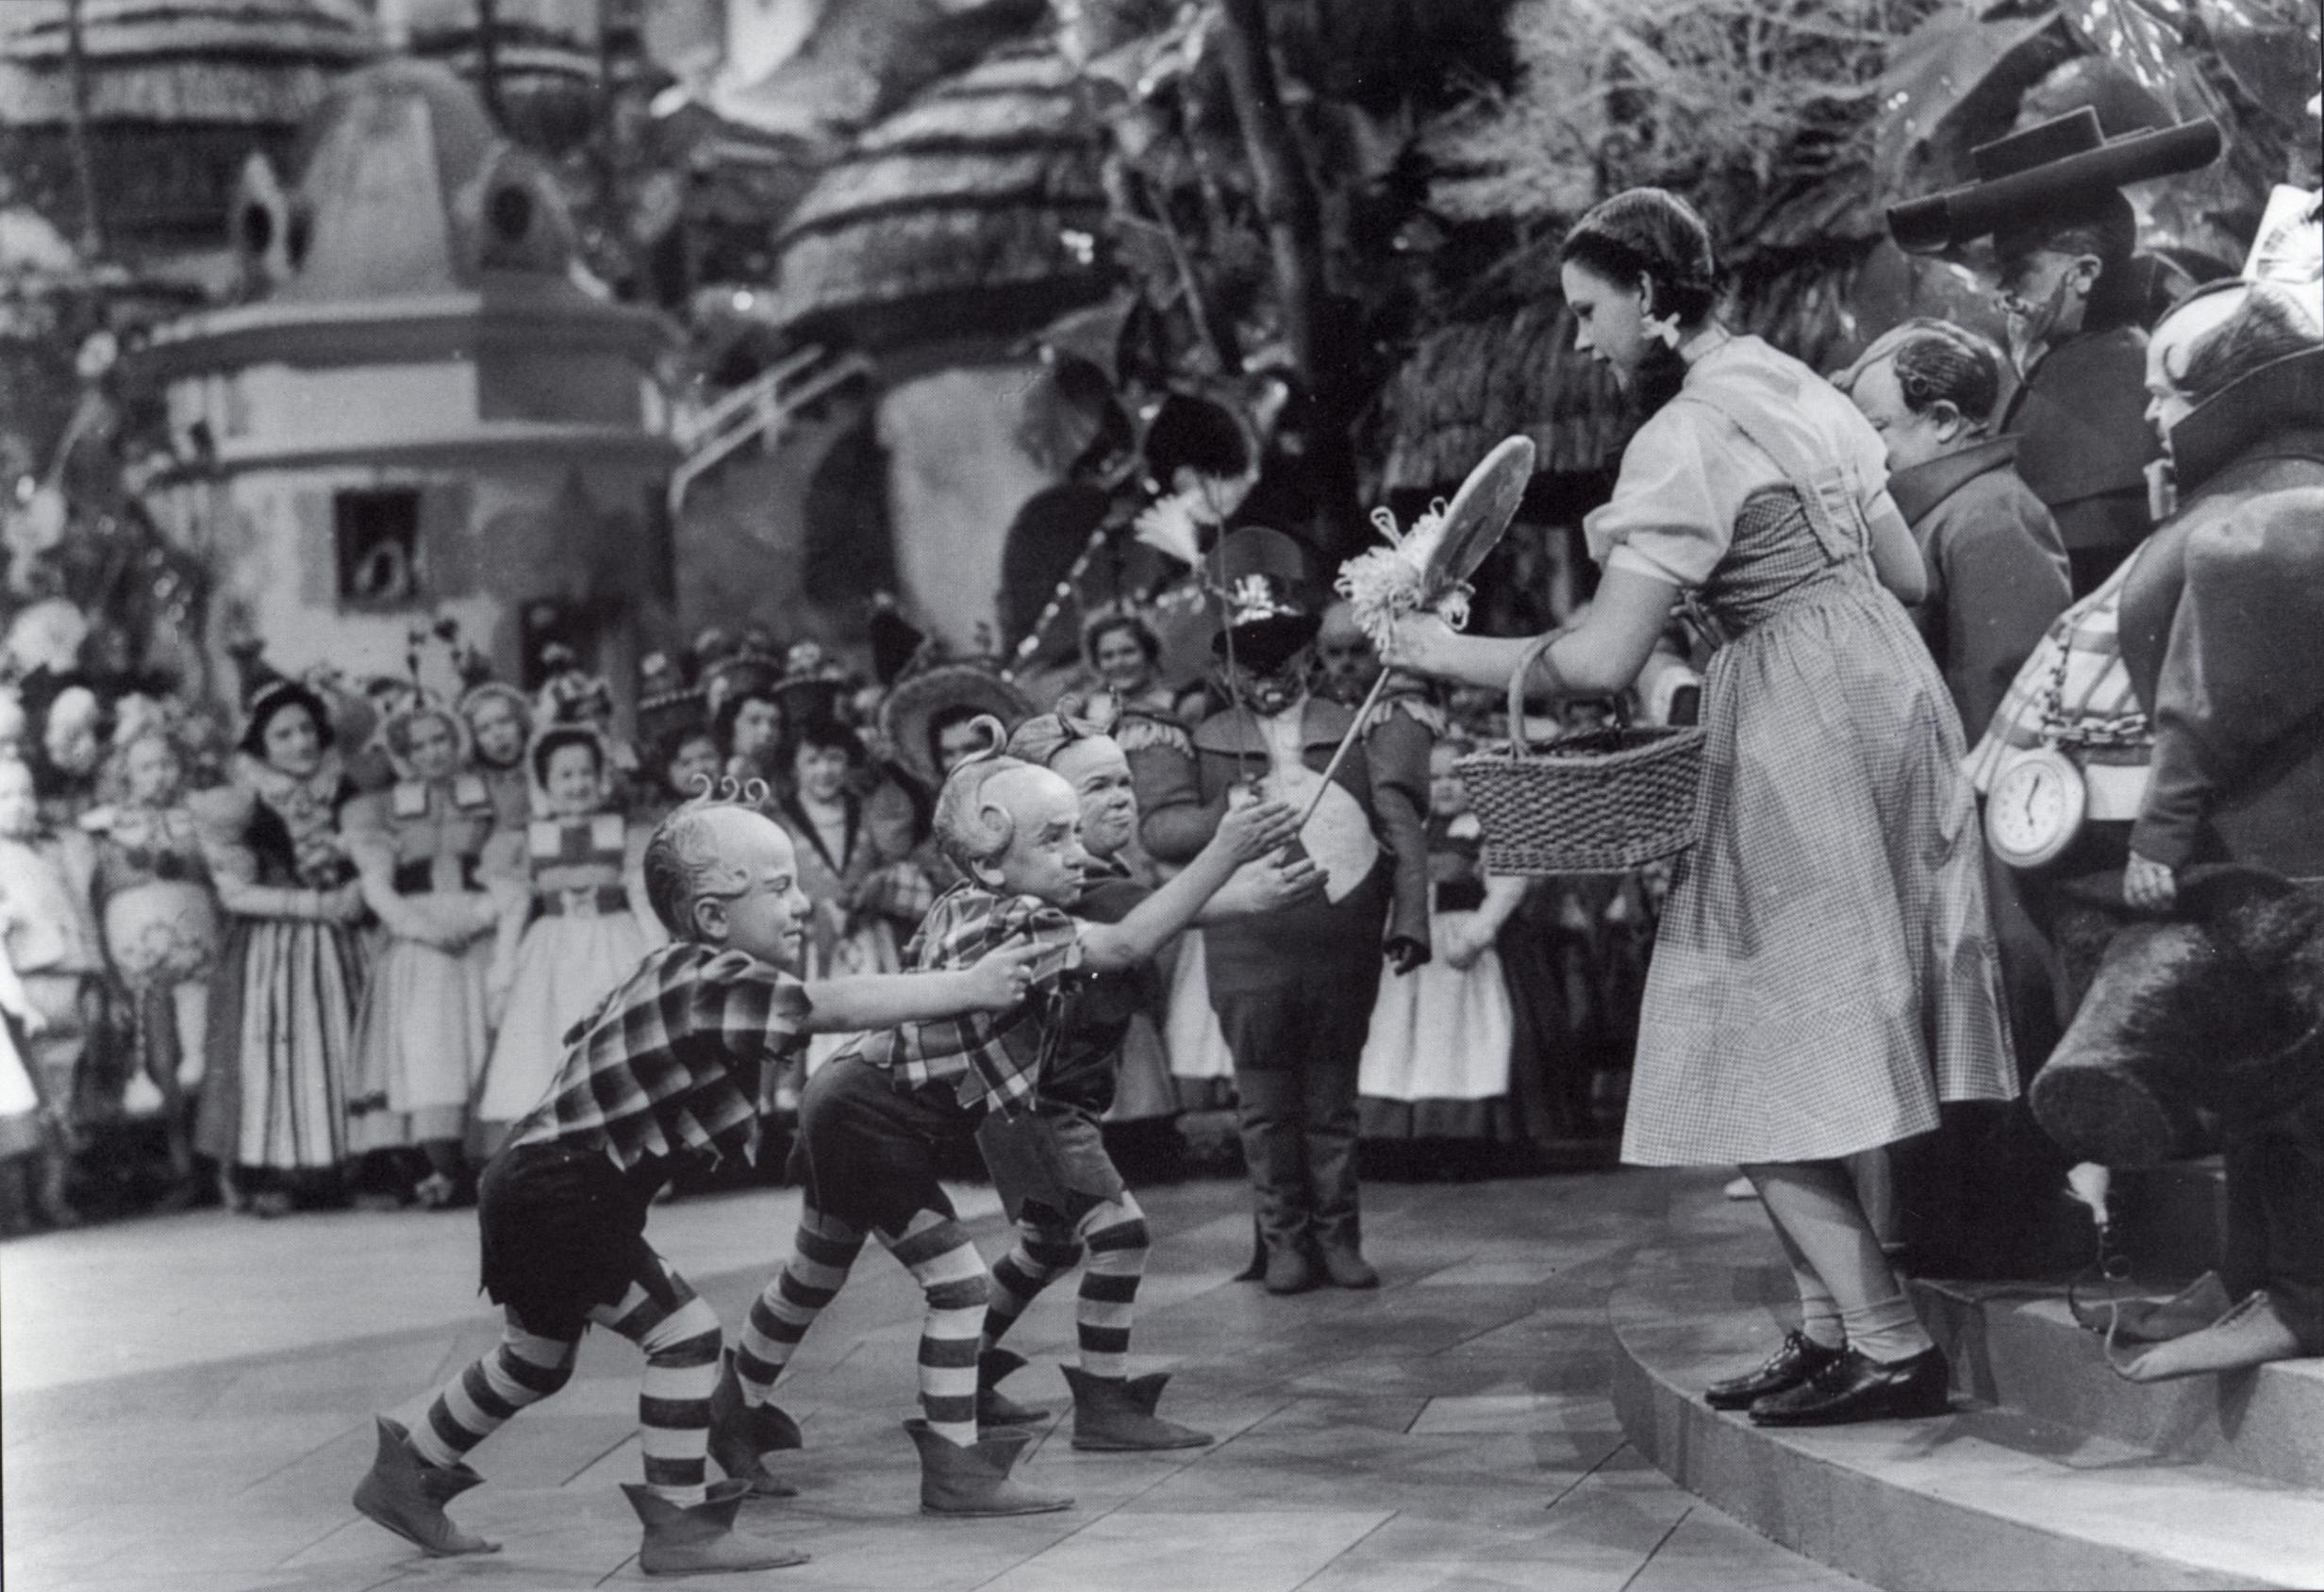 Judy Garland as Dorothy in the Wizard of Oz (Getty Images)